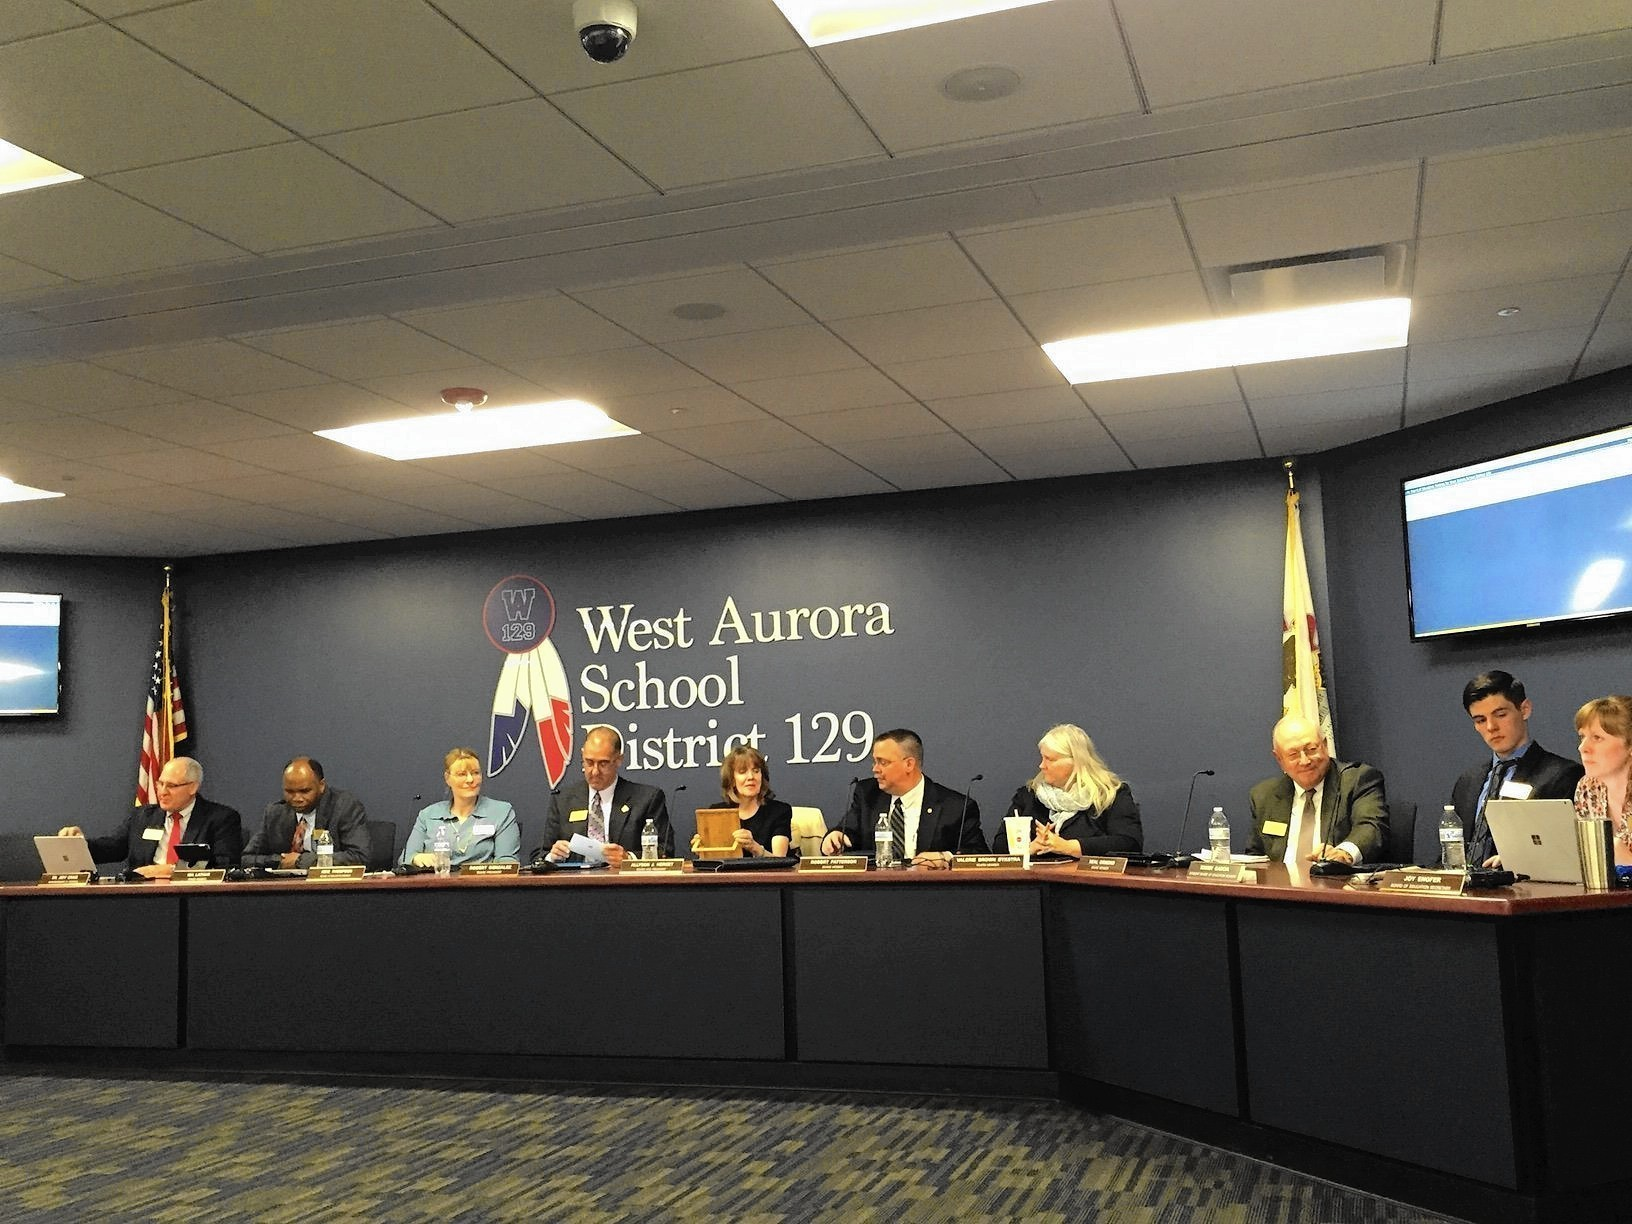 Four Seek Three Spots On West Aurora School Board Aurora Beacon News